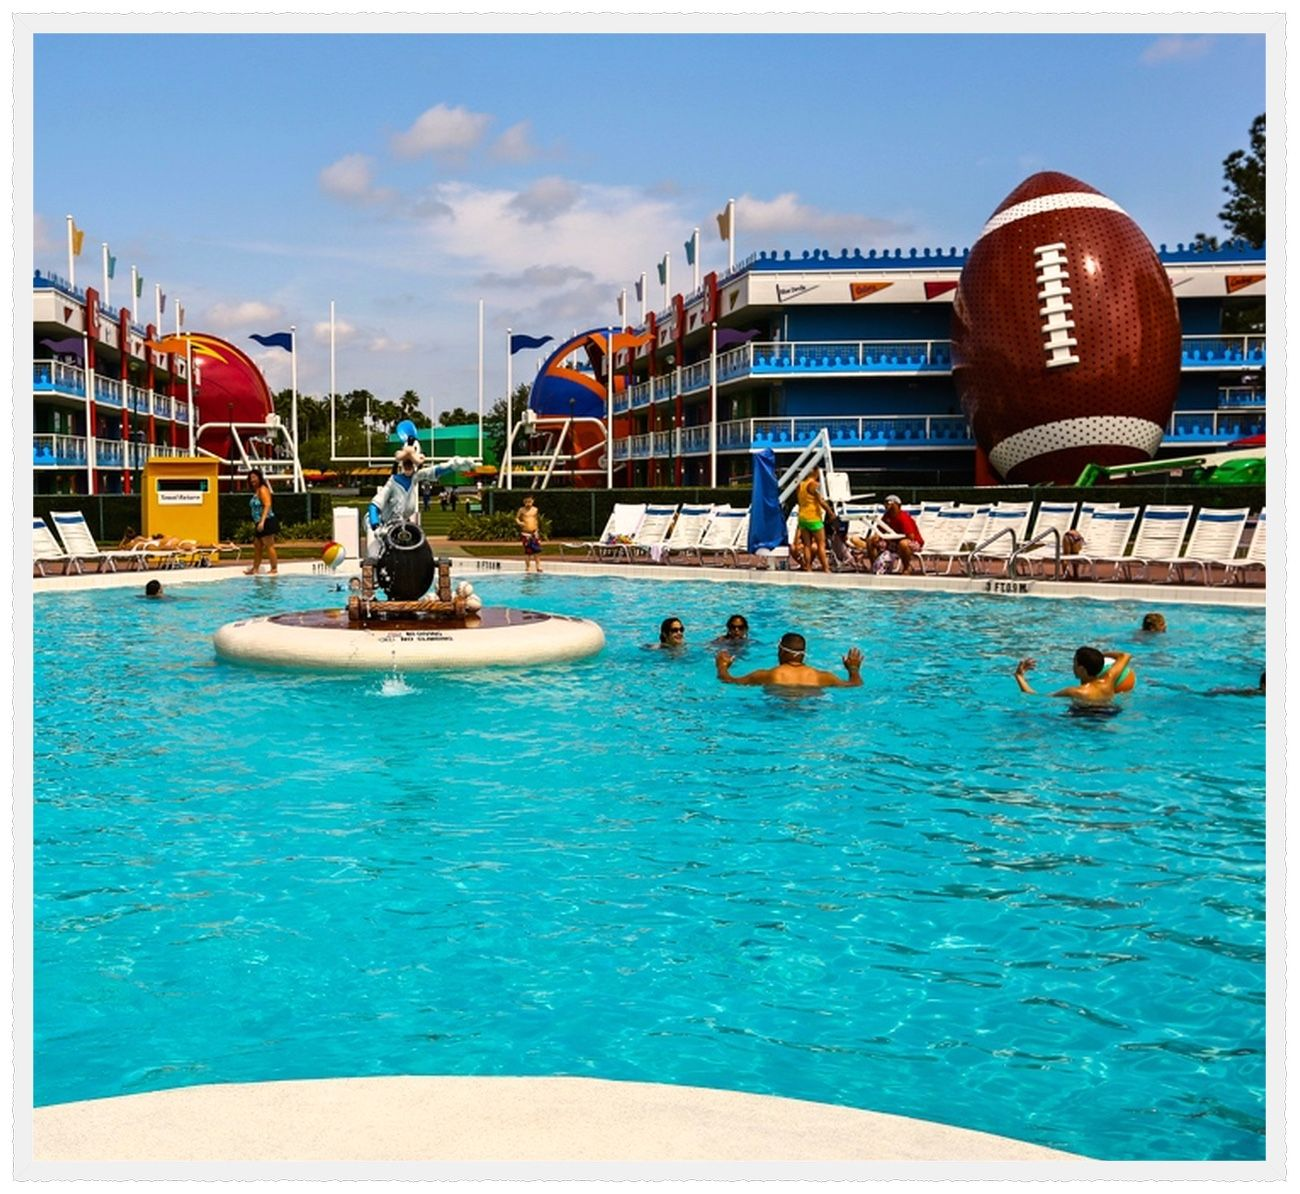 Orlando Florida Disneys AllStar Sports Resort is a